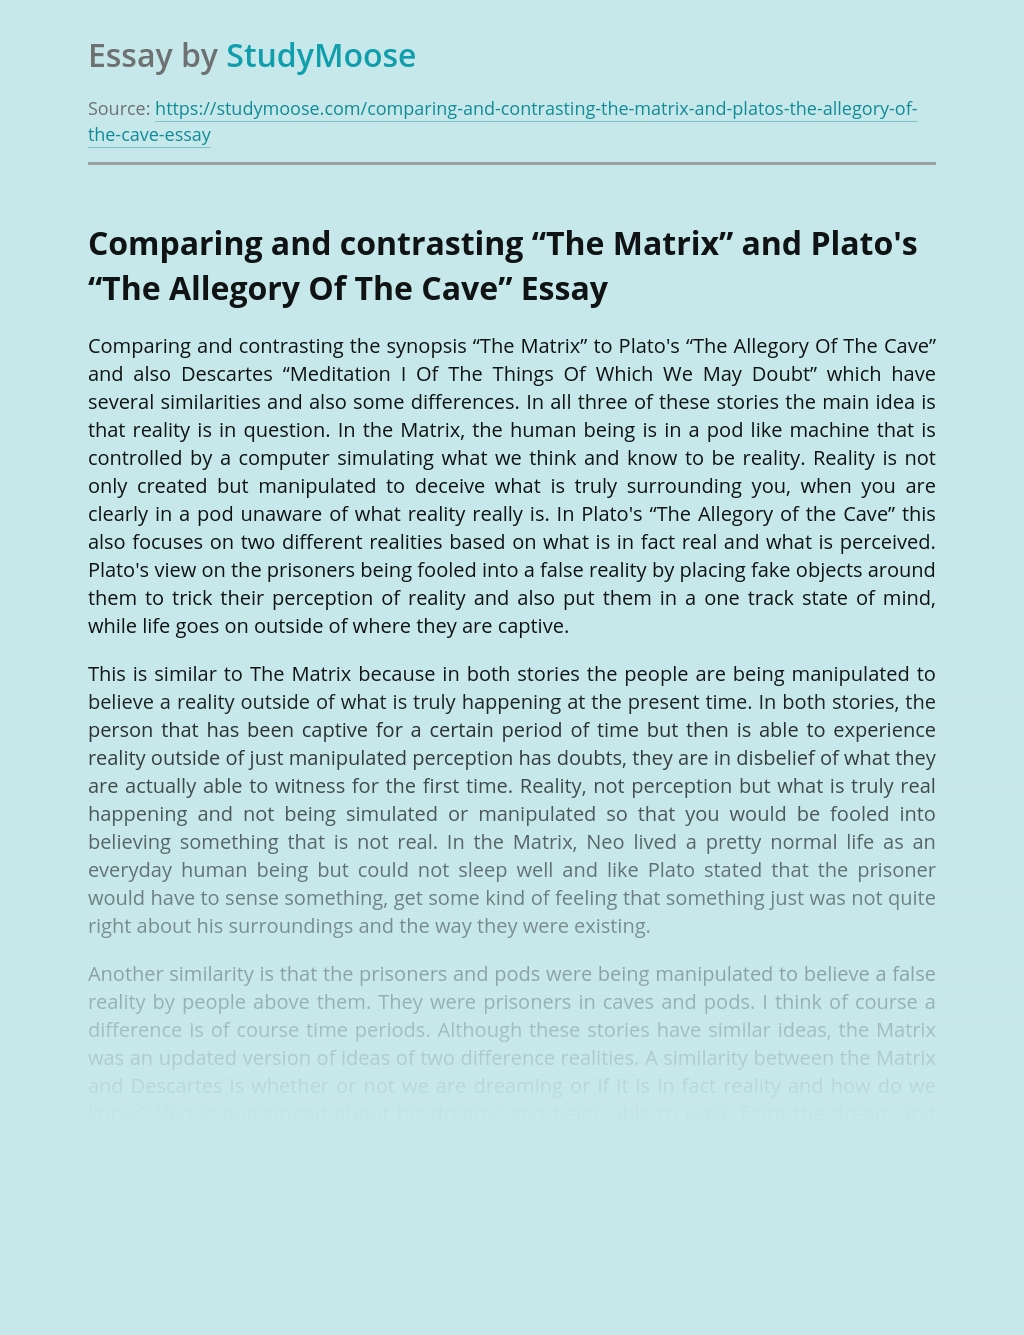 """Comparing and contrasting """"The Matrix"""" and Plato's """"The Allegory Of The Cave"""""""